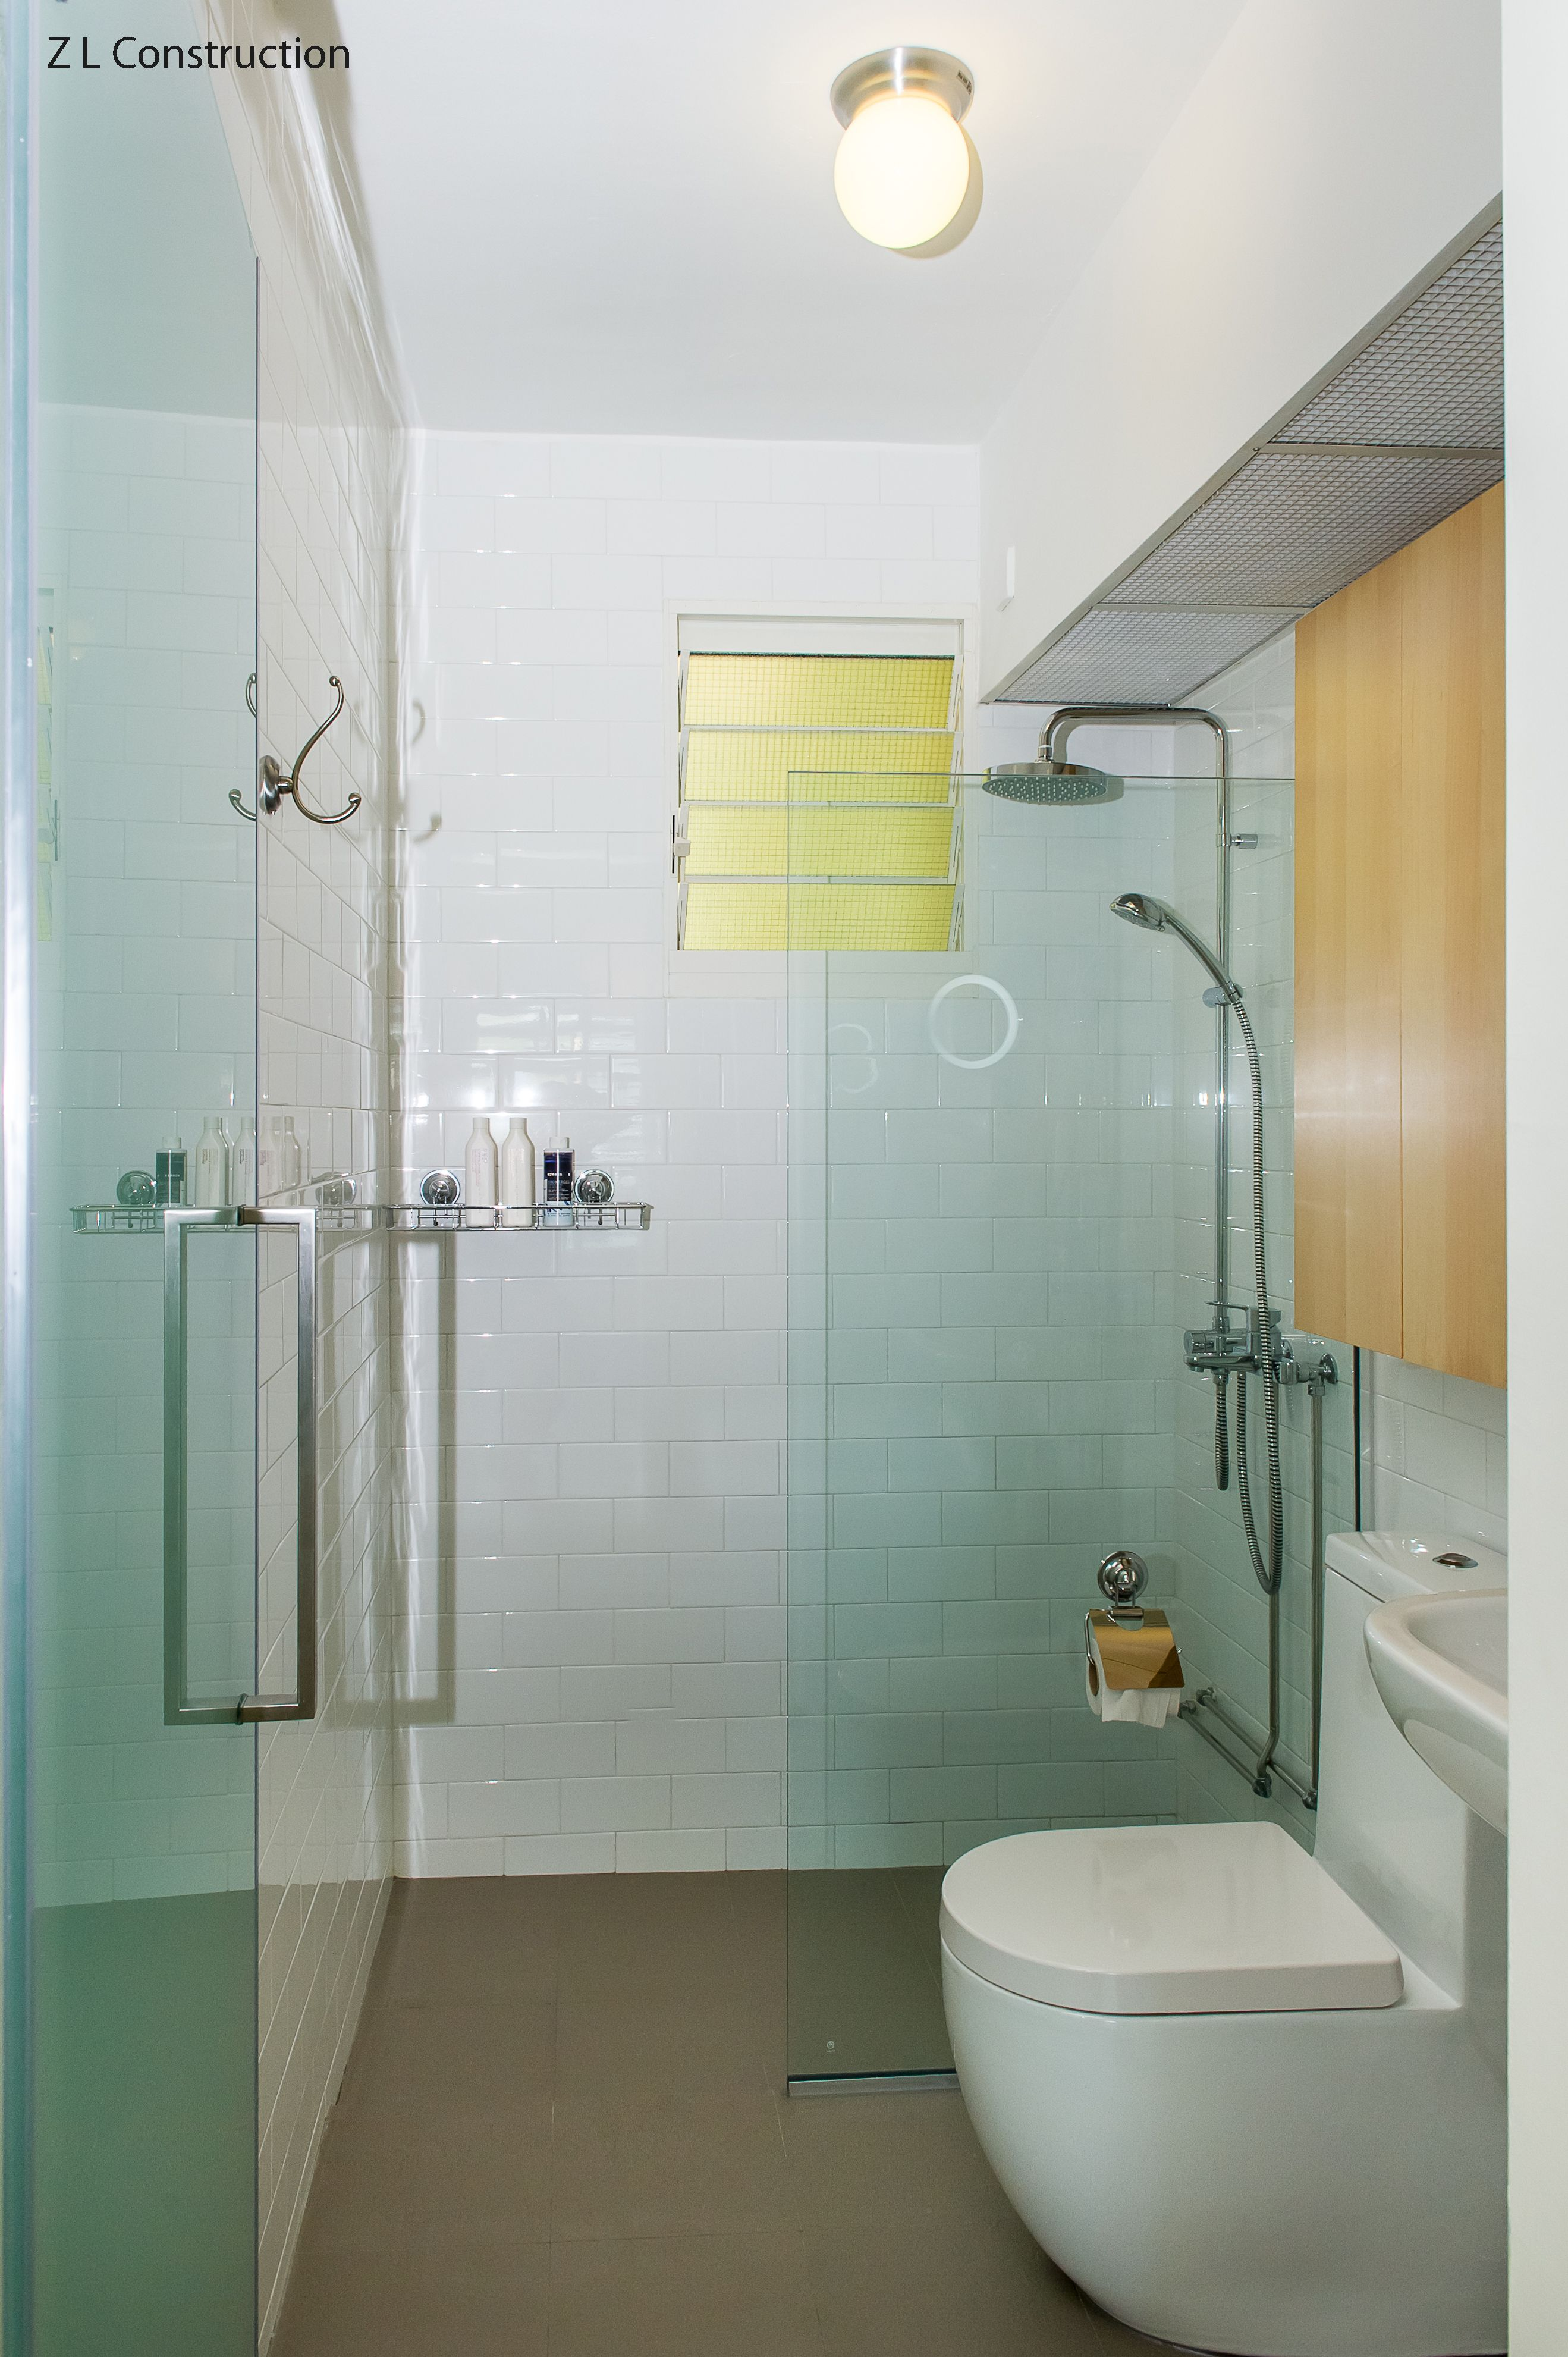 Z L Construction (Singapore) \\\\ HDB bathroom with glass shower ...